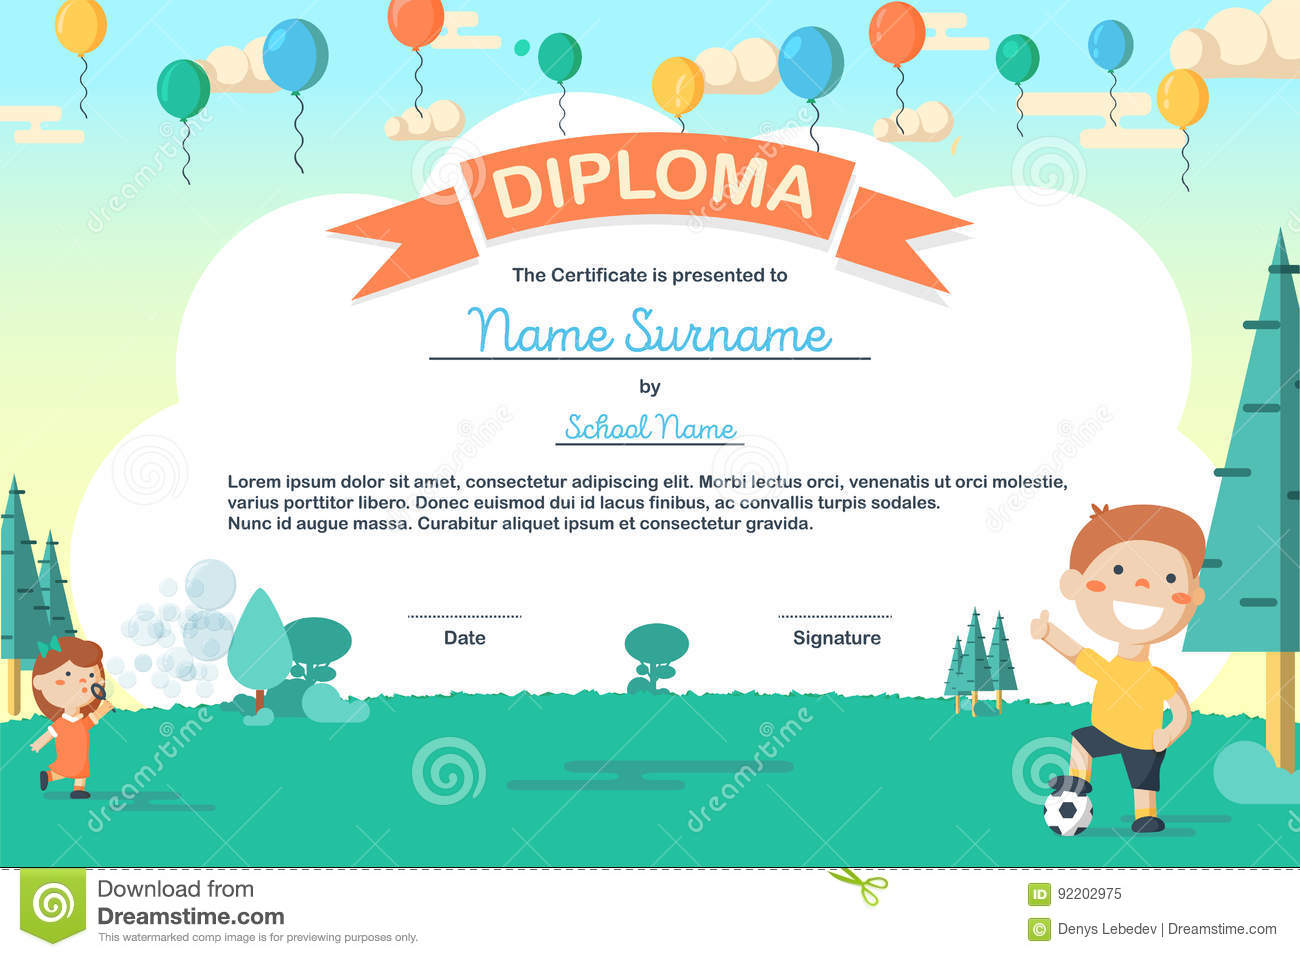 Colorful Kids Summer Camp Diploma Certificate Template In Cartoon Style  Royalty Free Stock Photo